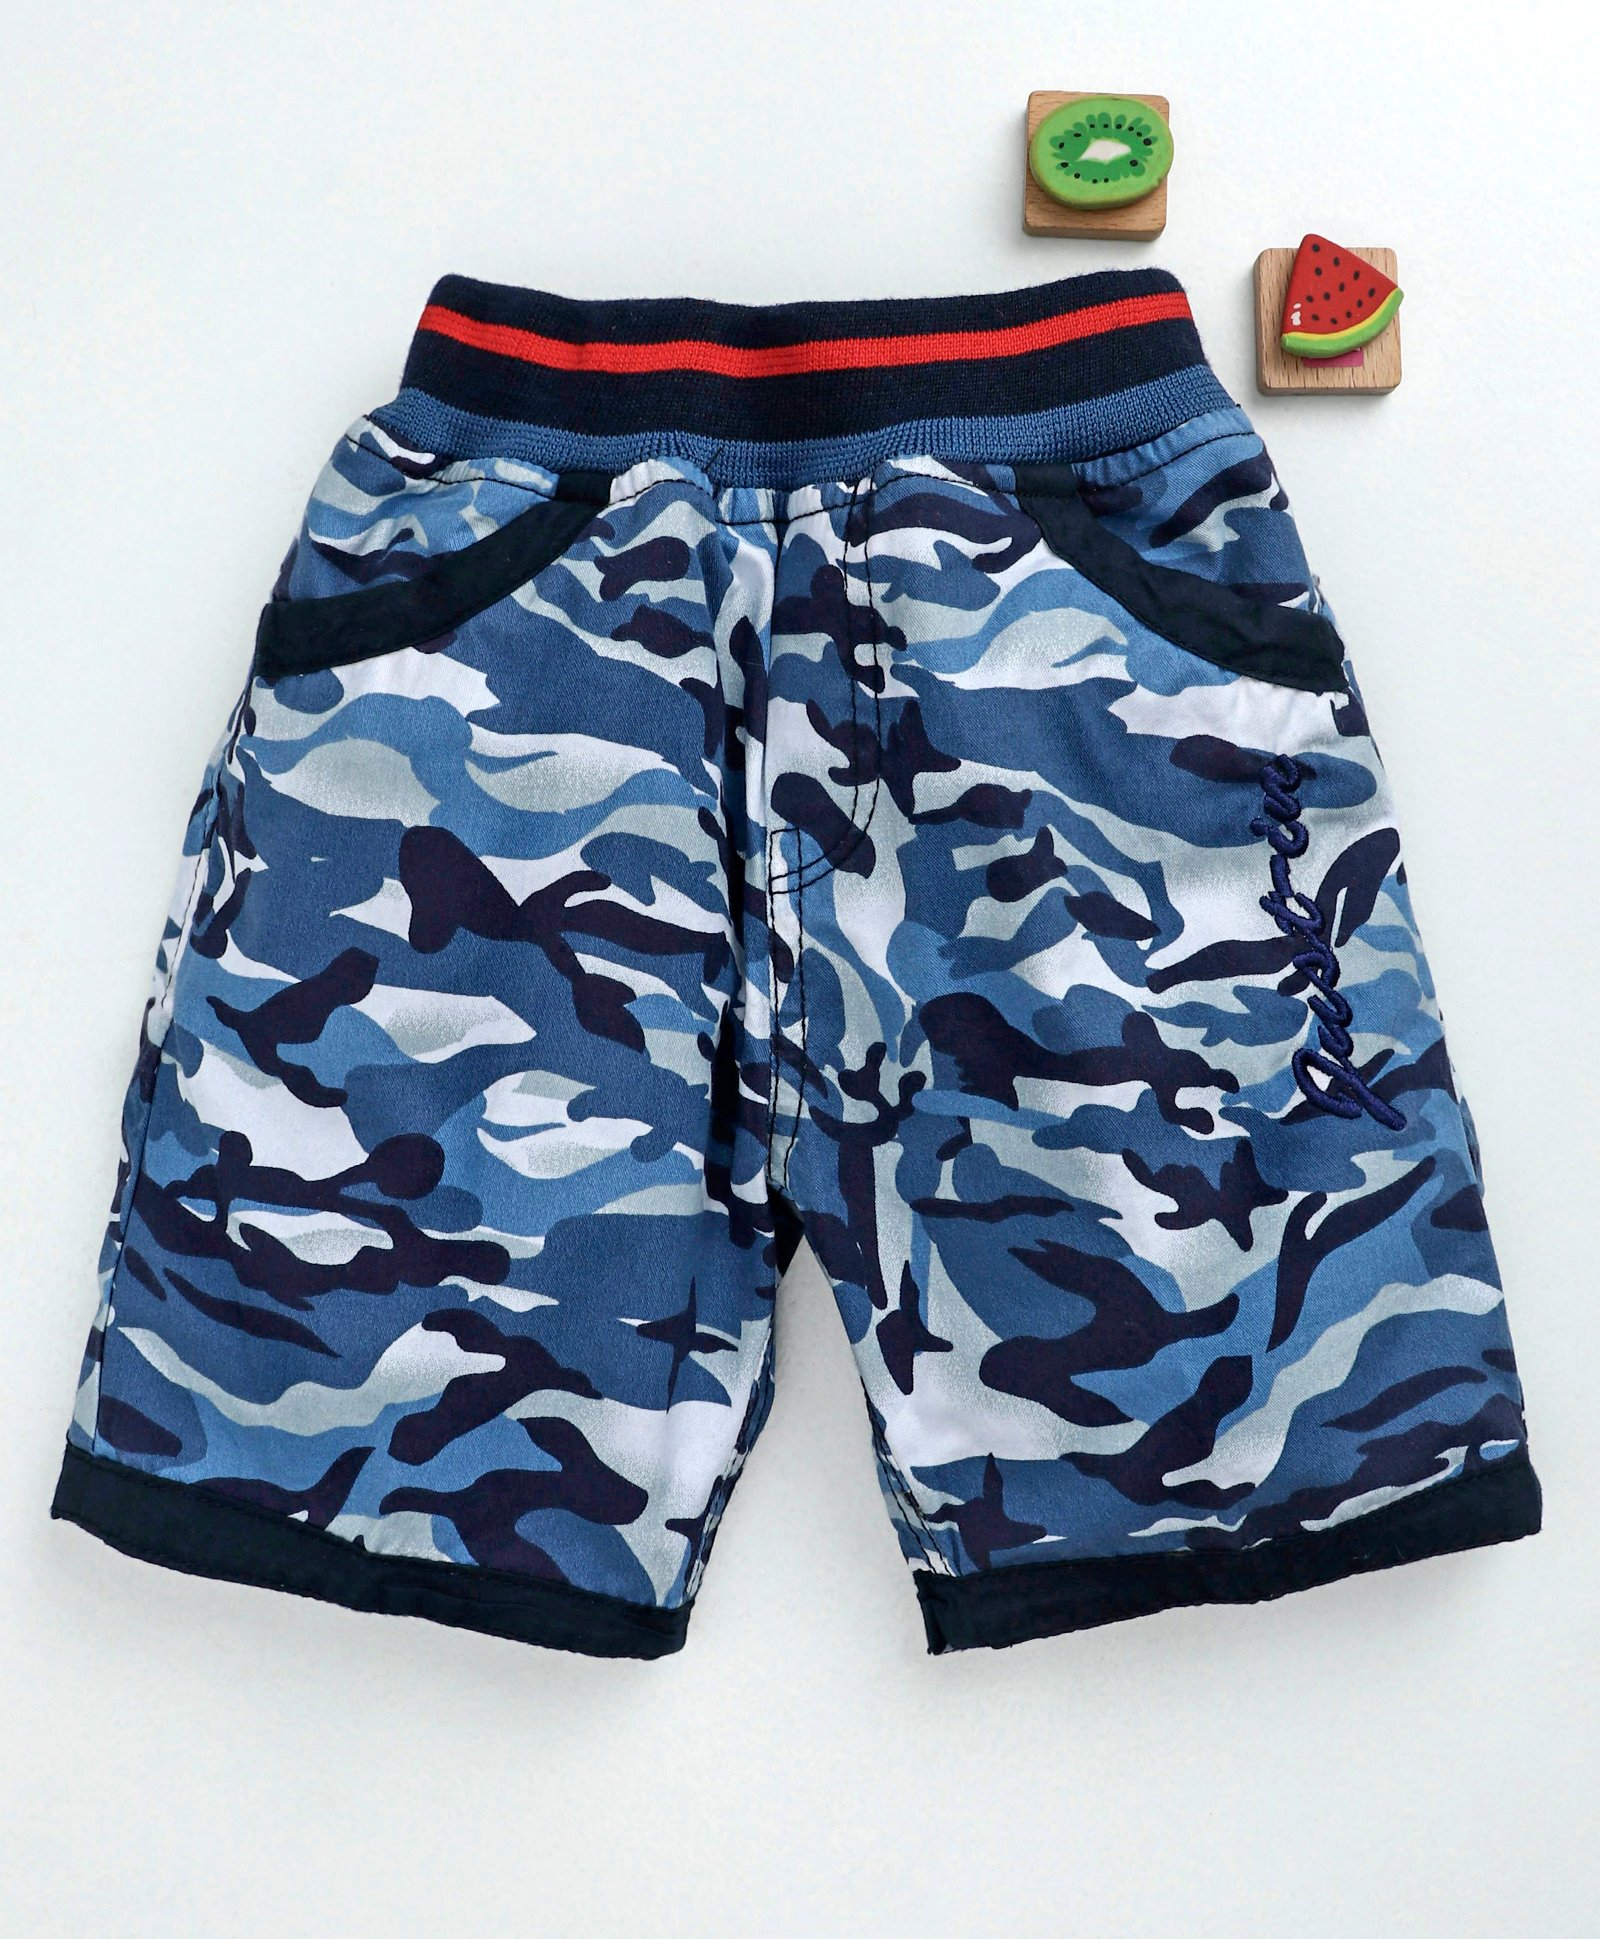 1fdb695079 Buy Olio Kids Camouflage Shorts Justice Embroidery Blue for Boys (4 ...